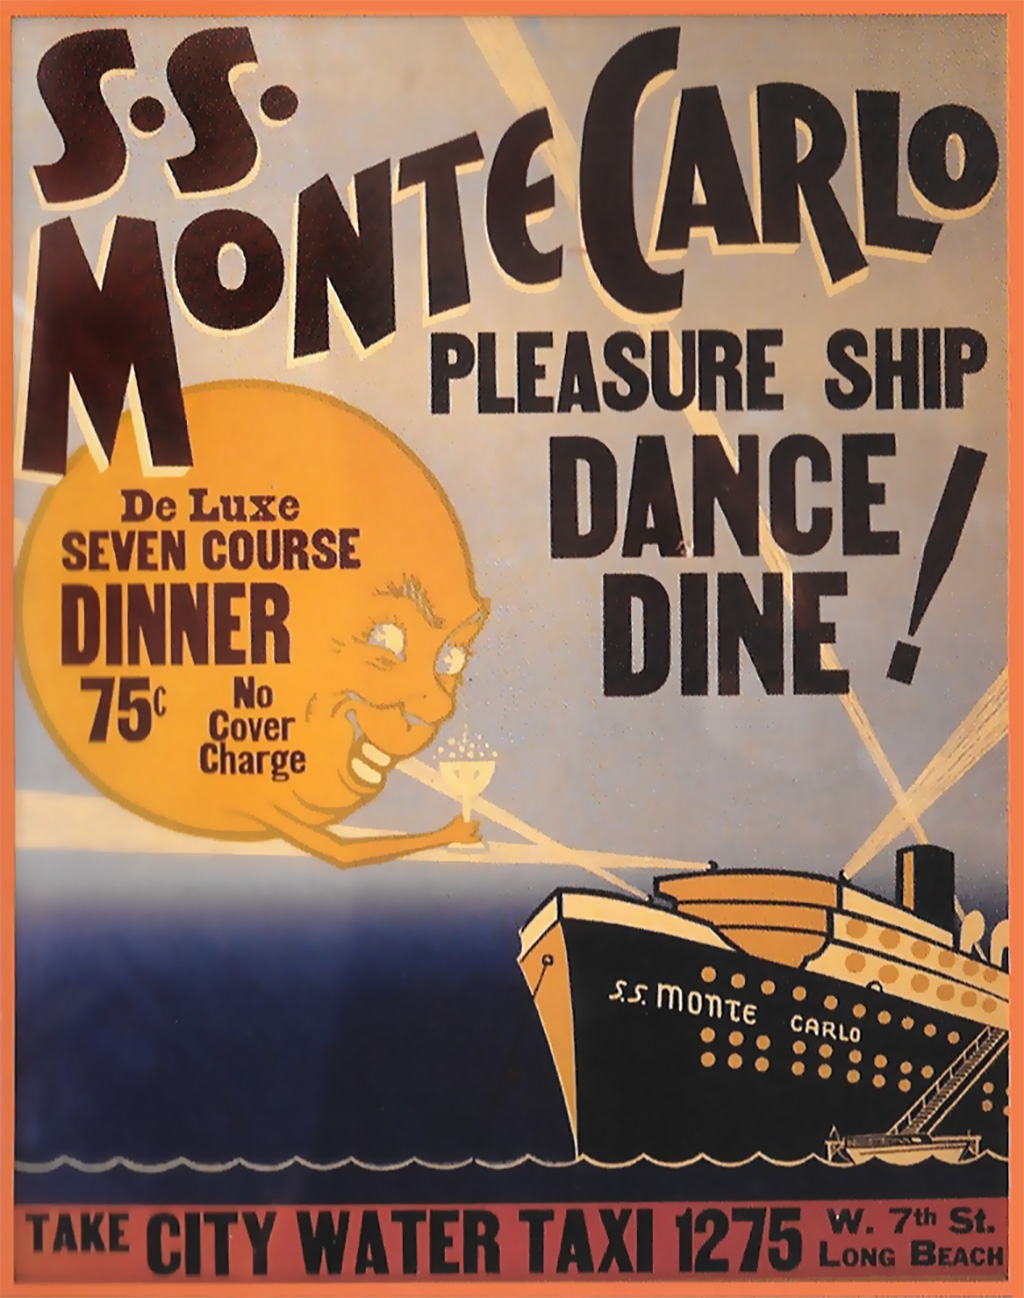 SS Monte Carlo poster